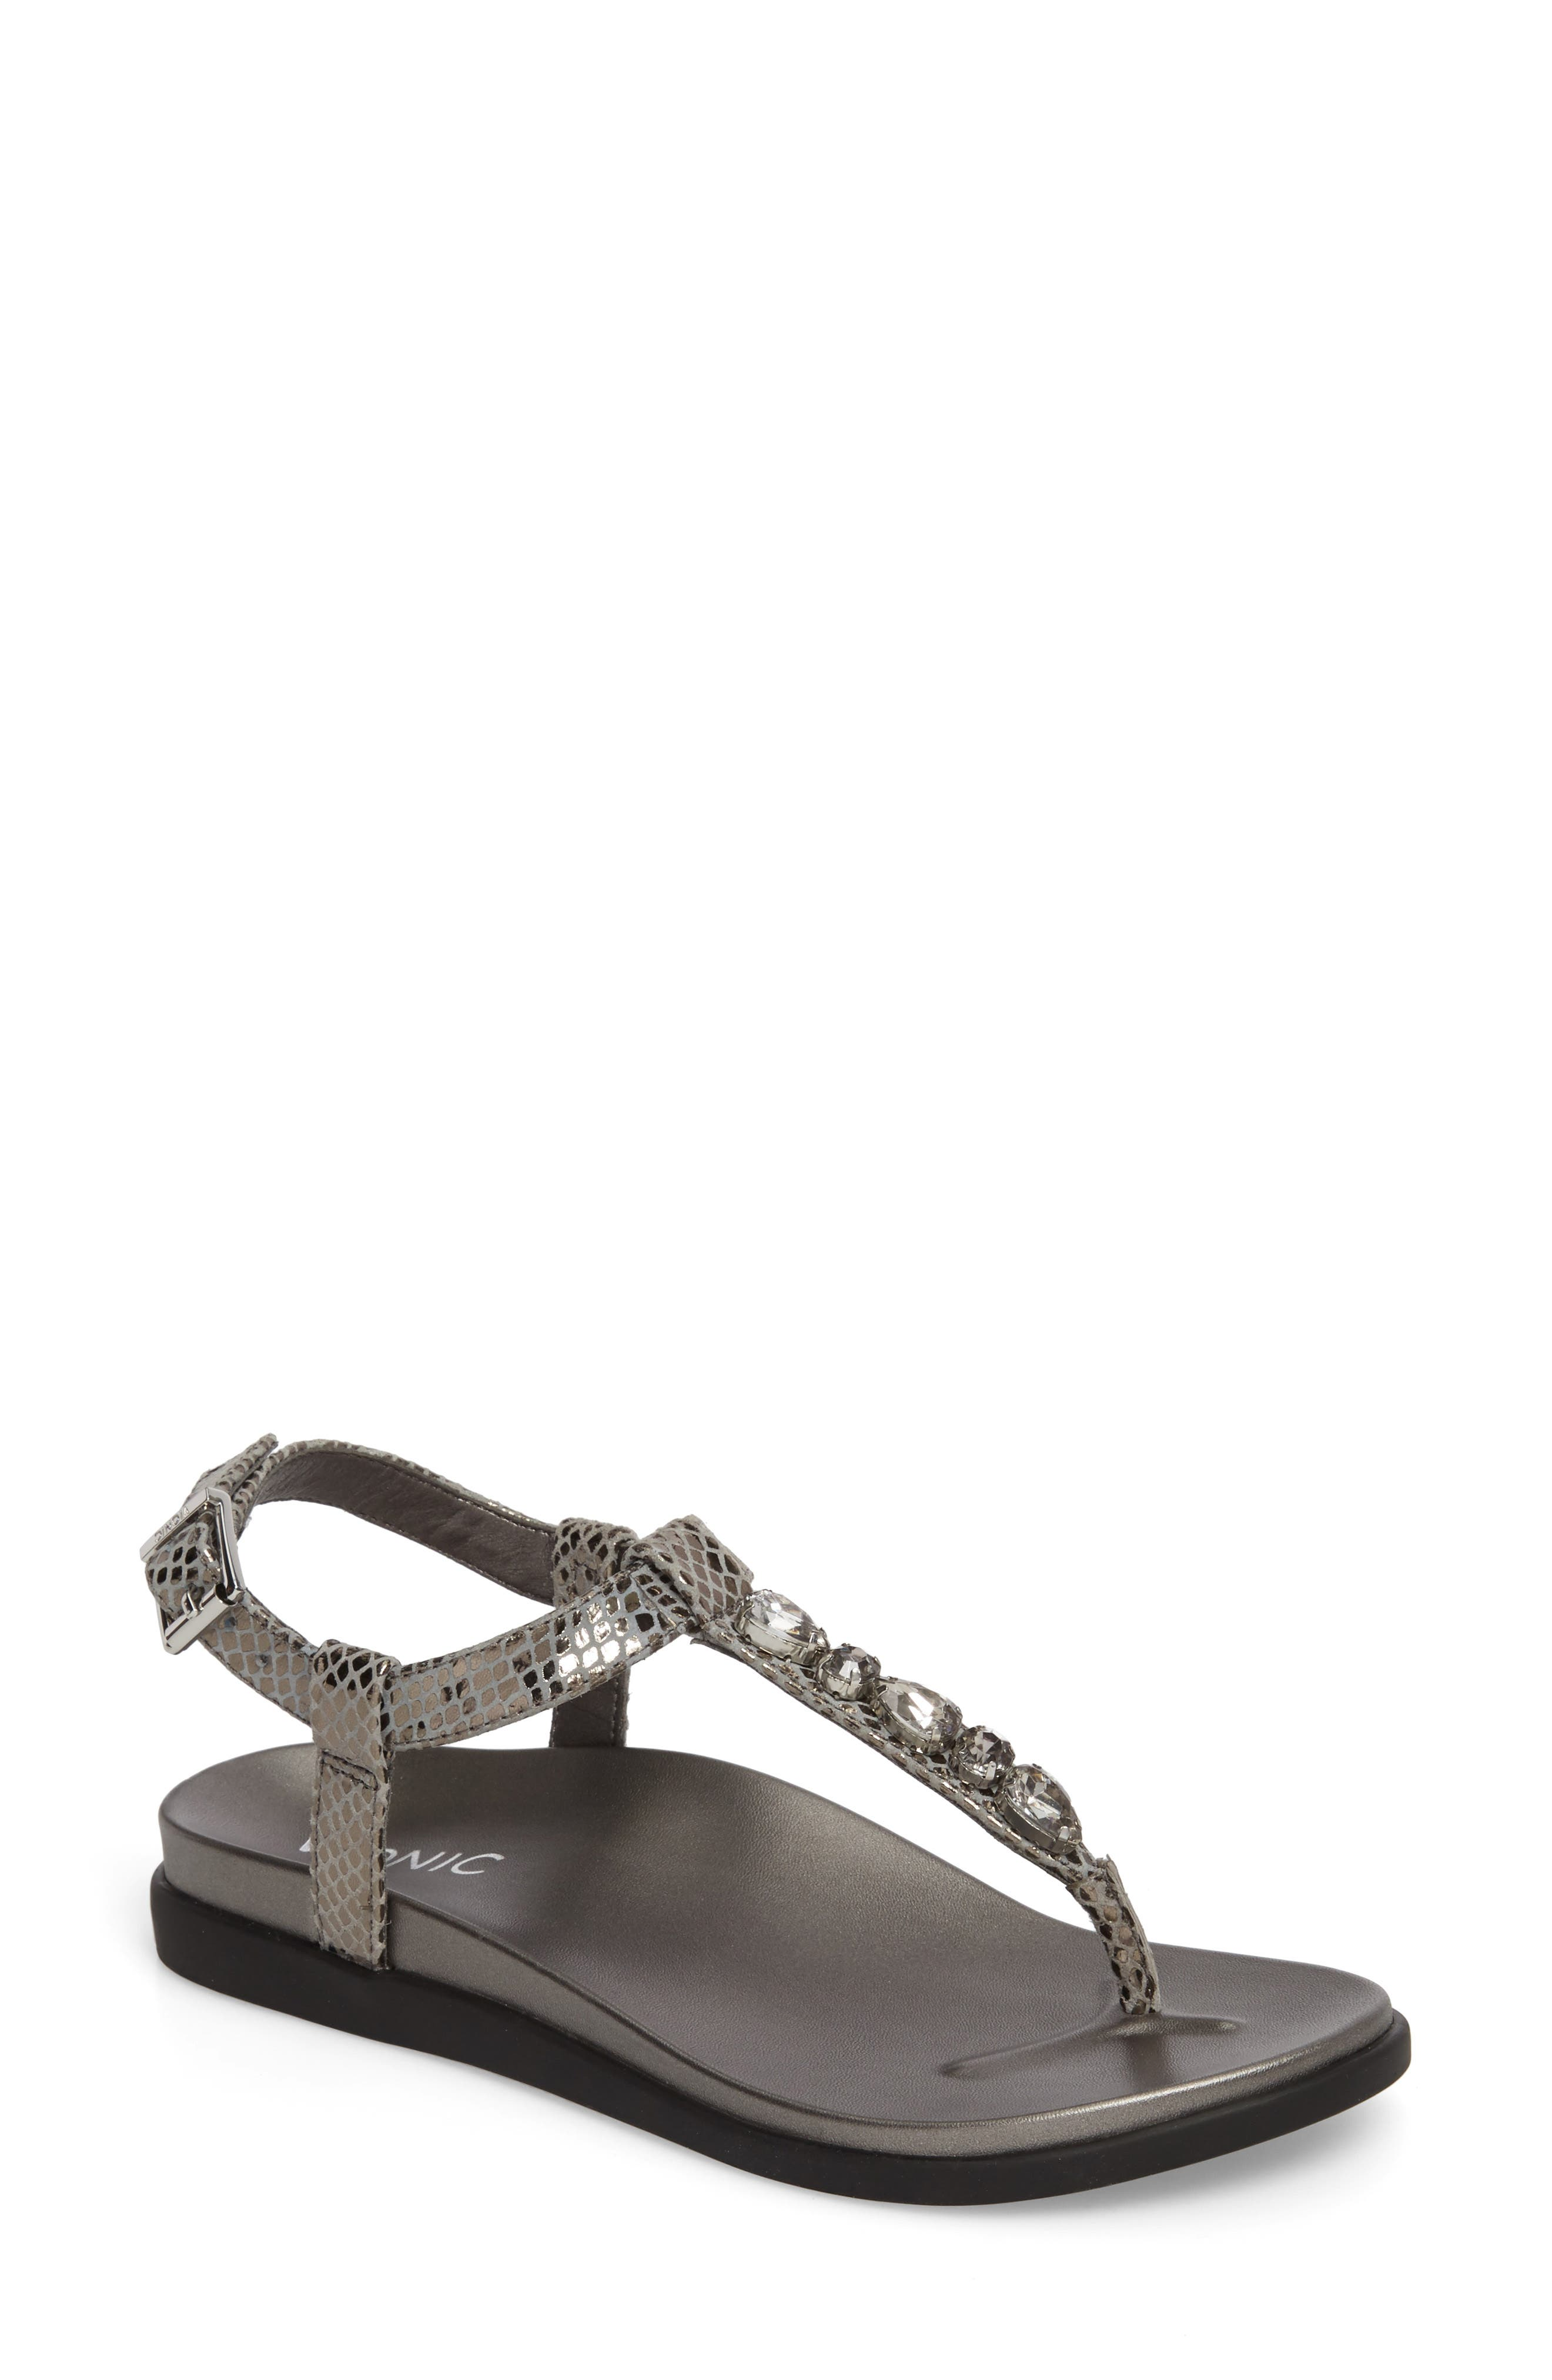 Boca Sandal,                         Main,                         color, Pewter Snake Leather